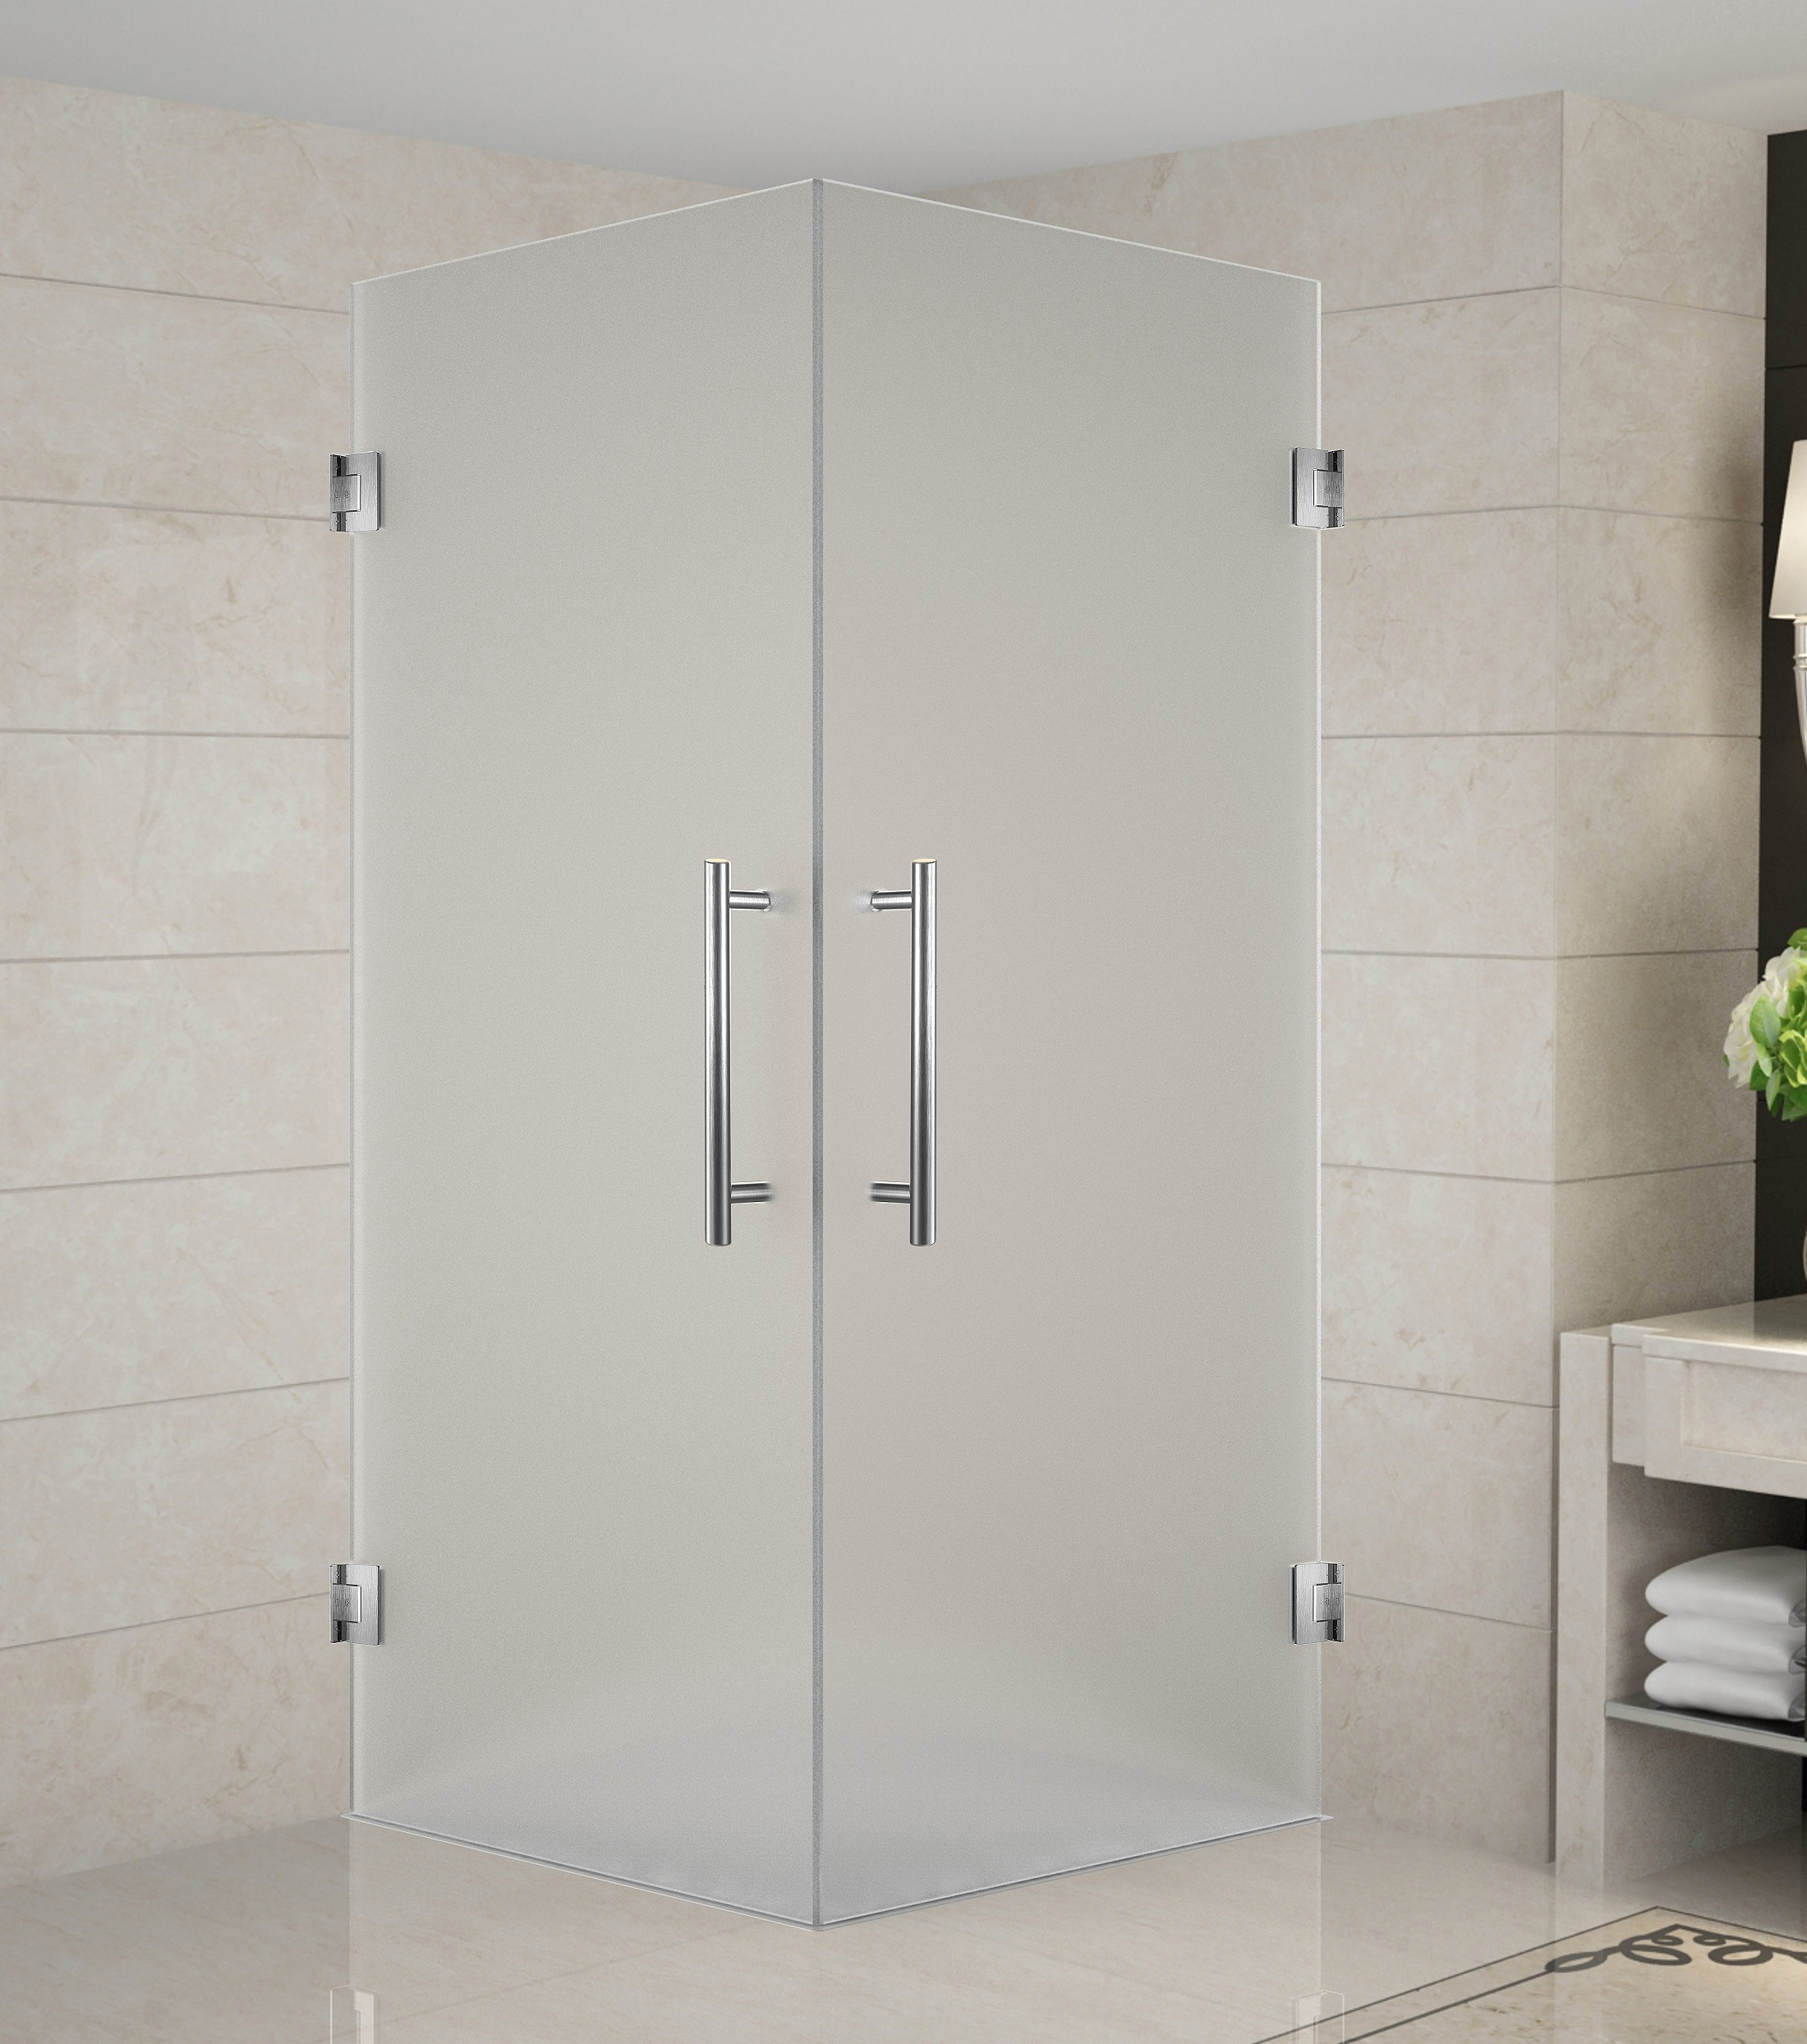 Aston Global SEN989F-SS-32-10 Stainless Steel Completely Frameless Dual-Door Square Shower Enclosure